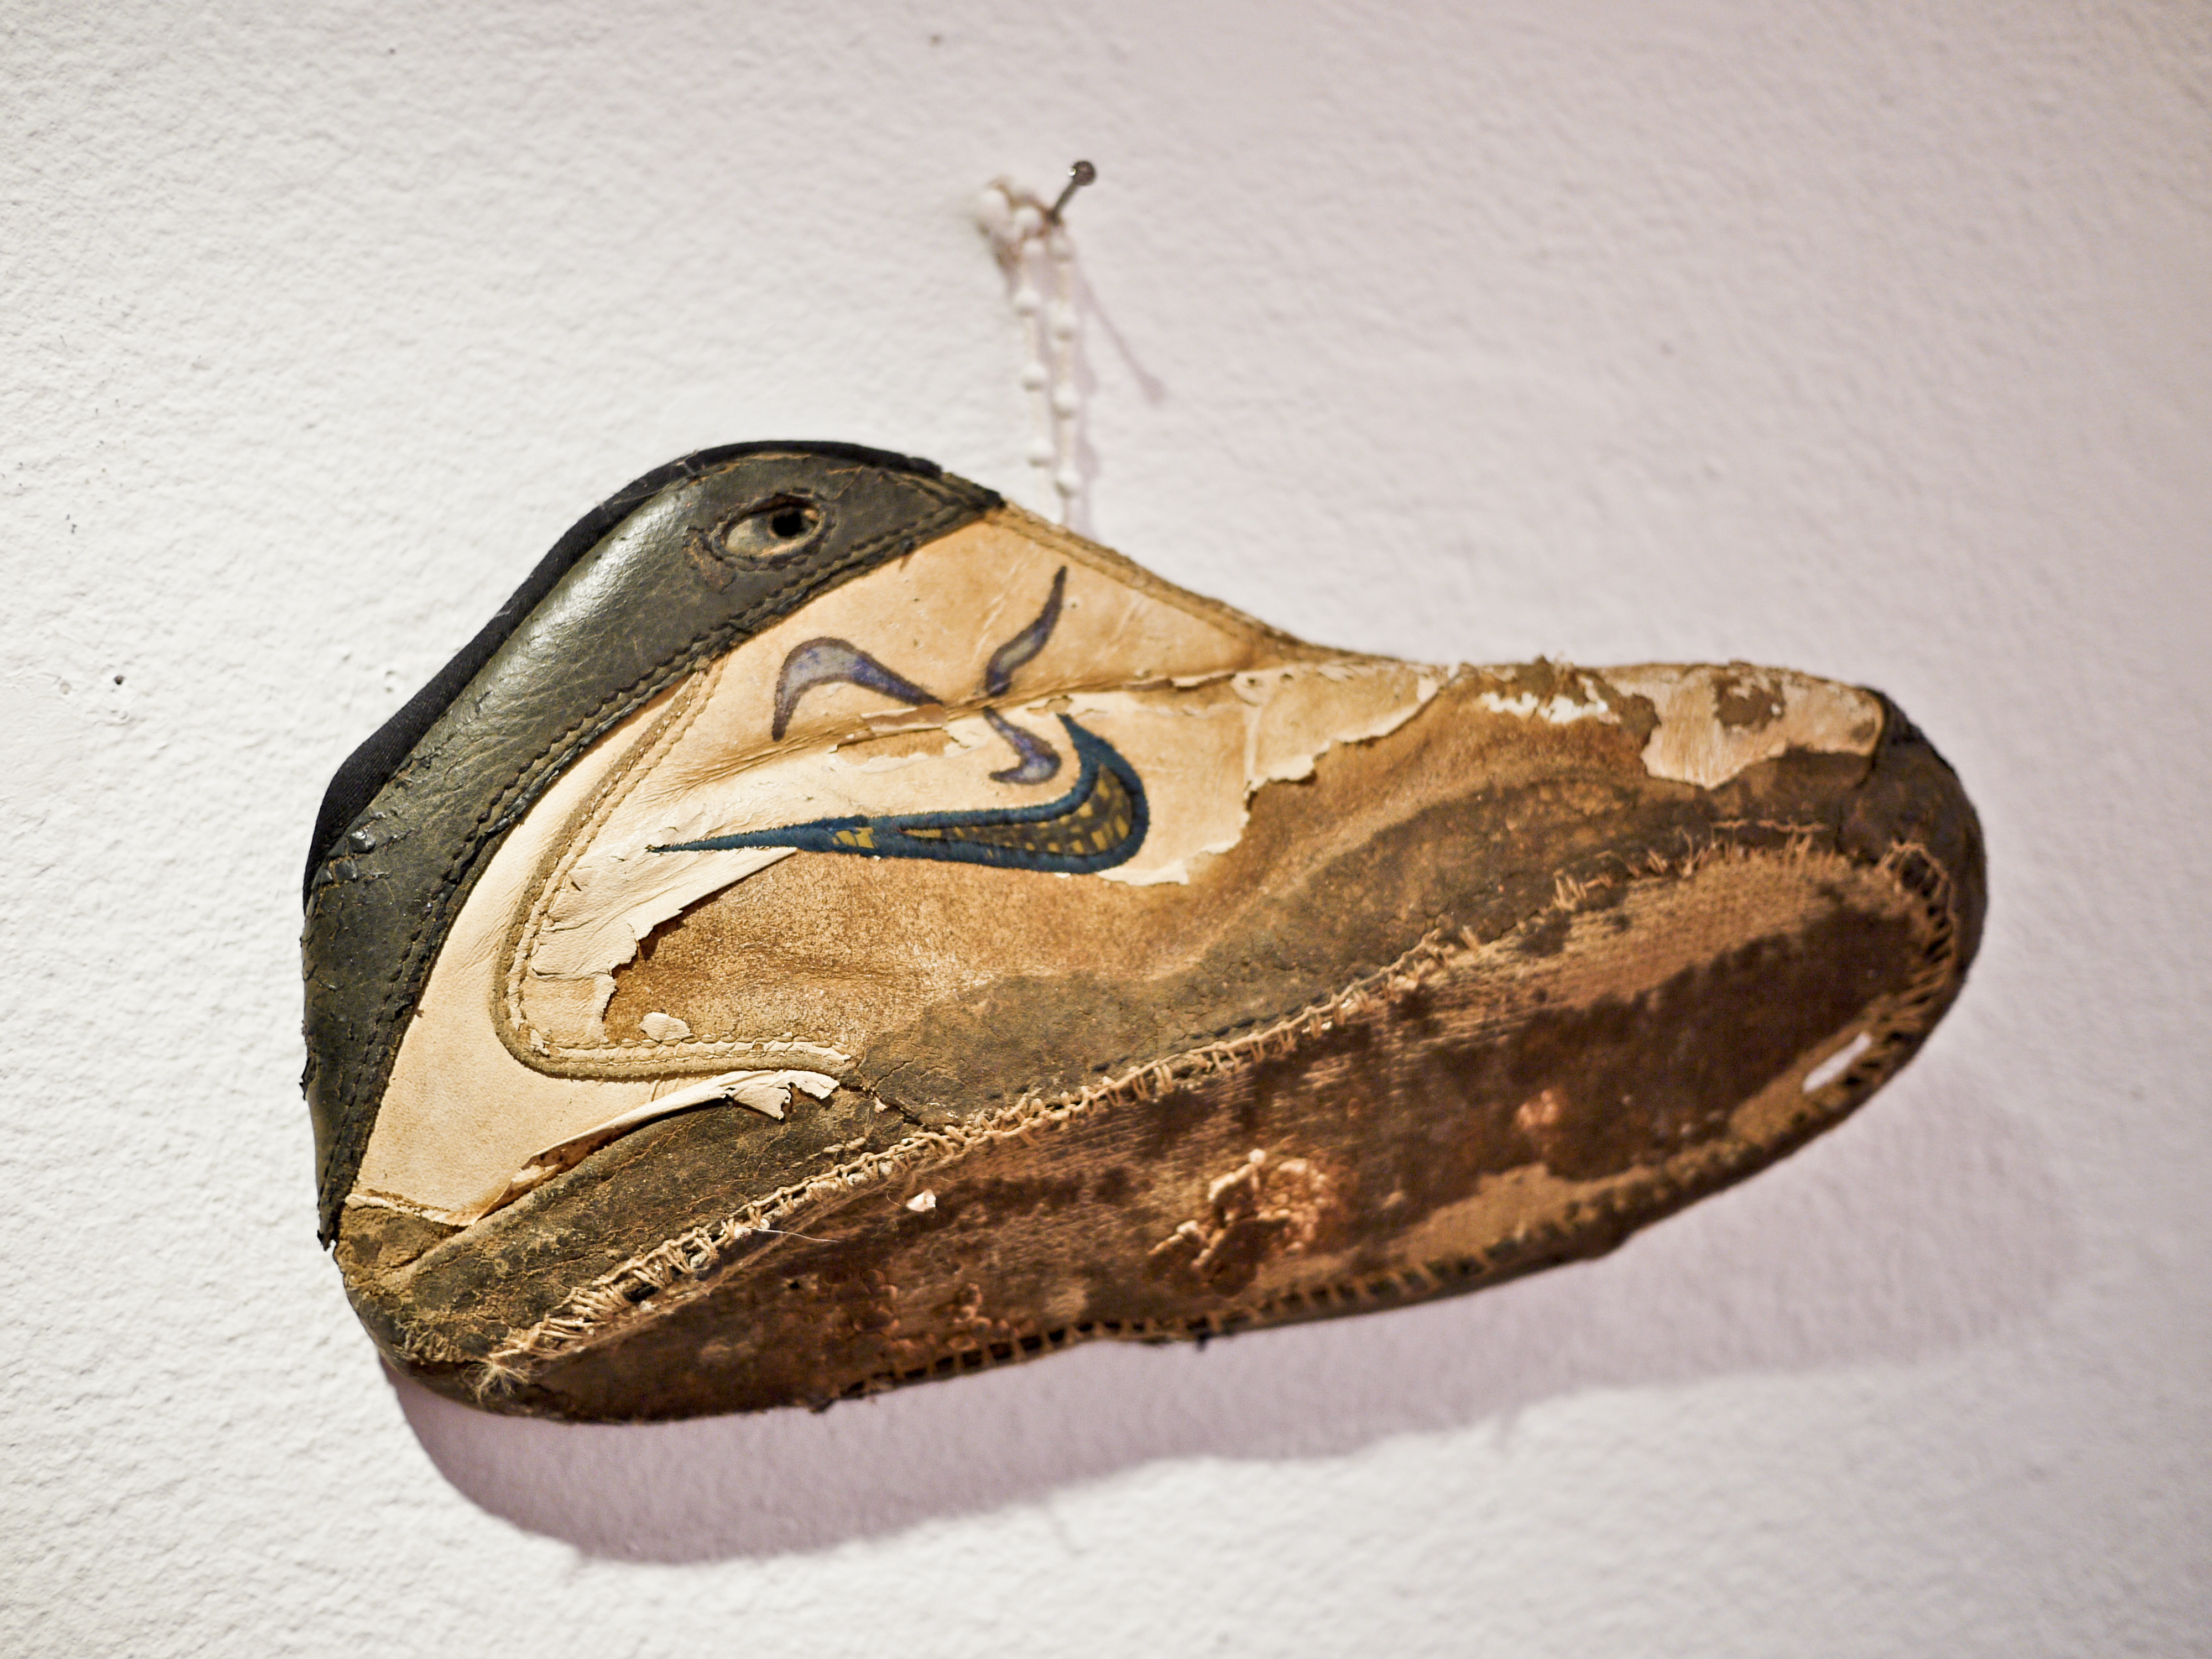 02. Charley CASE - NIKE PIQUE - chaussure, encre - 2013